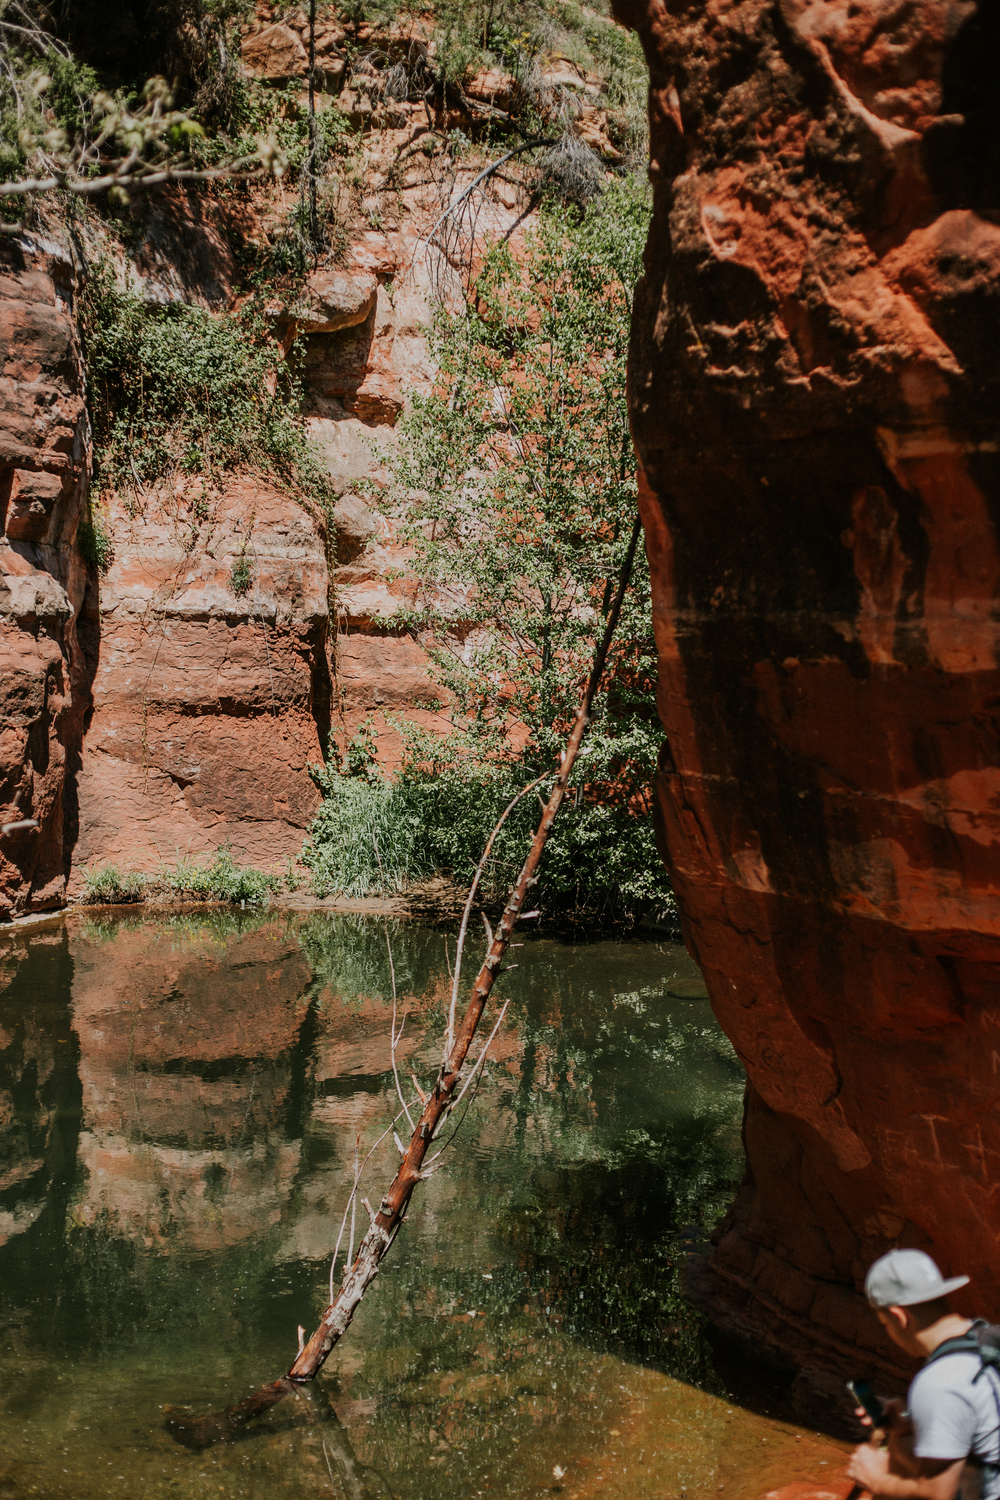 Sedona - AZ - Arizona - Hiking - Slide Rock - Adventure - Las Vegas Photographer - Photographer - Photography - Kamra Fuller Photography - Arizona Photography - Sedona Photography - Travel Photography - Travel Photographer - Travel - River - National Park